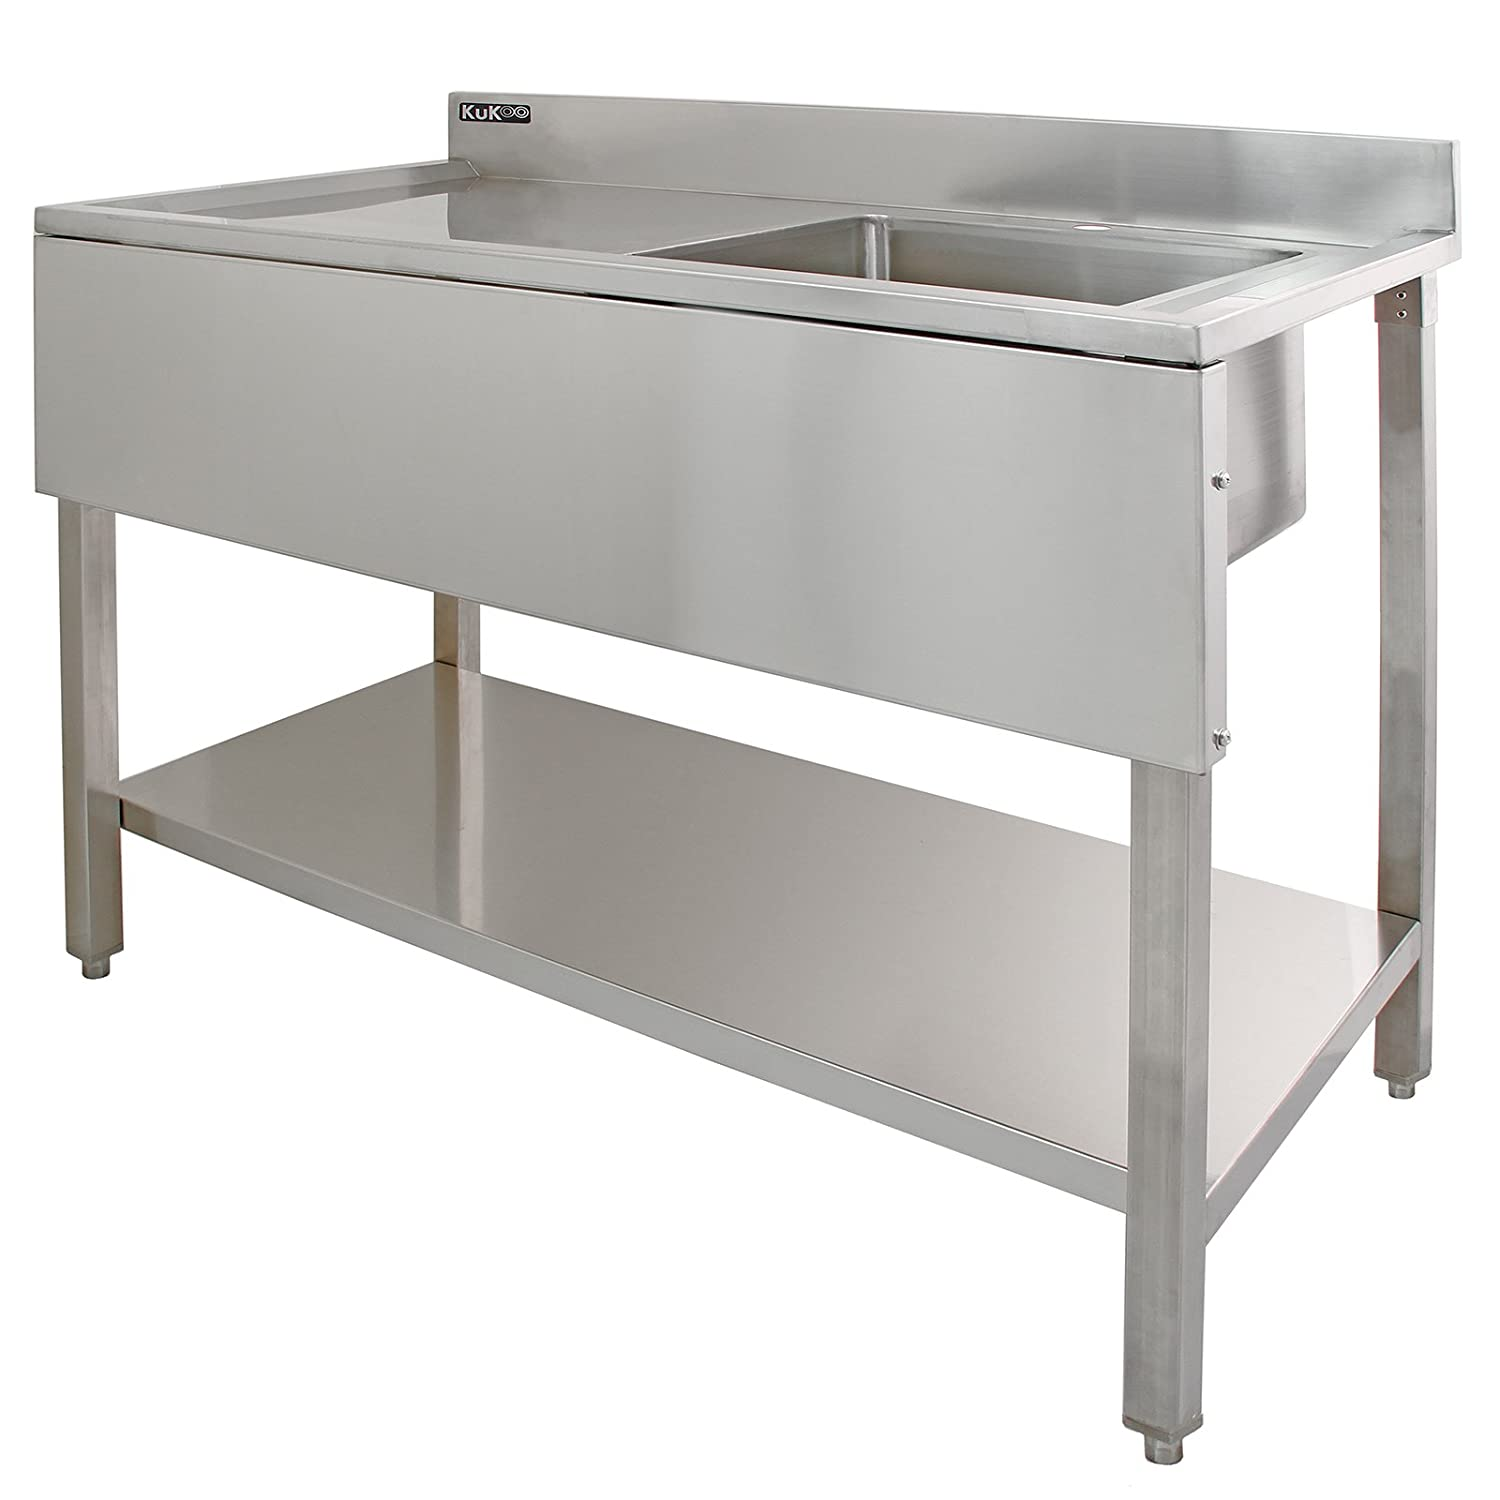 KuKoo Commercial Kitchen Catering Sink, Stainless Steel, Left Hand Drainer,  1.0 Bowl, 120cm Wide: Amazon.co.uk: Kitchen U0026 Home